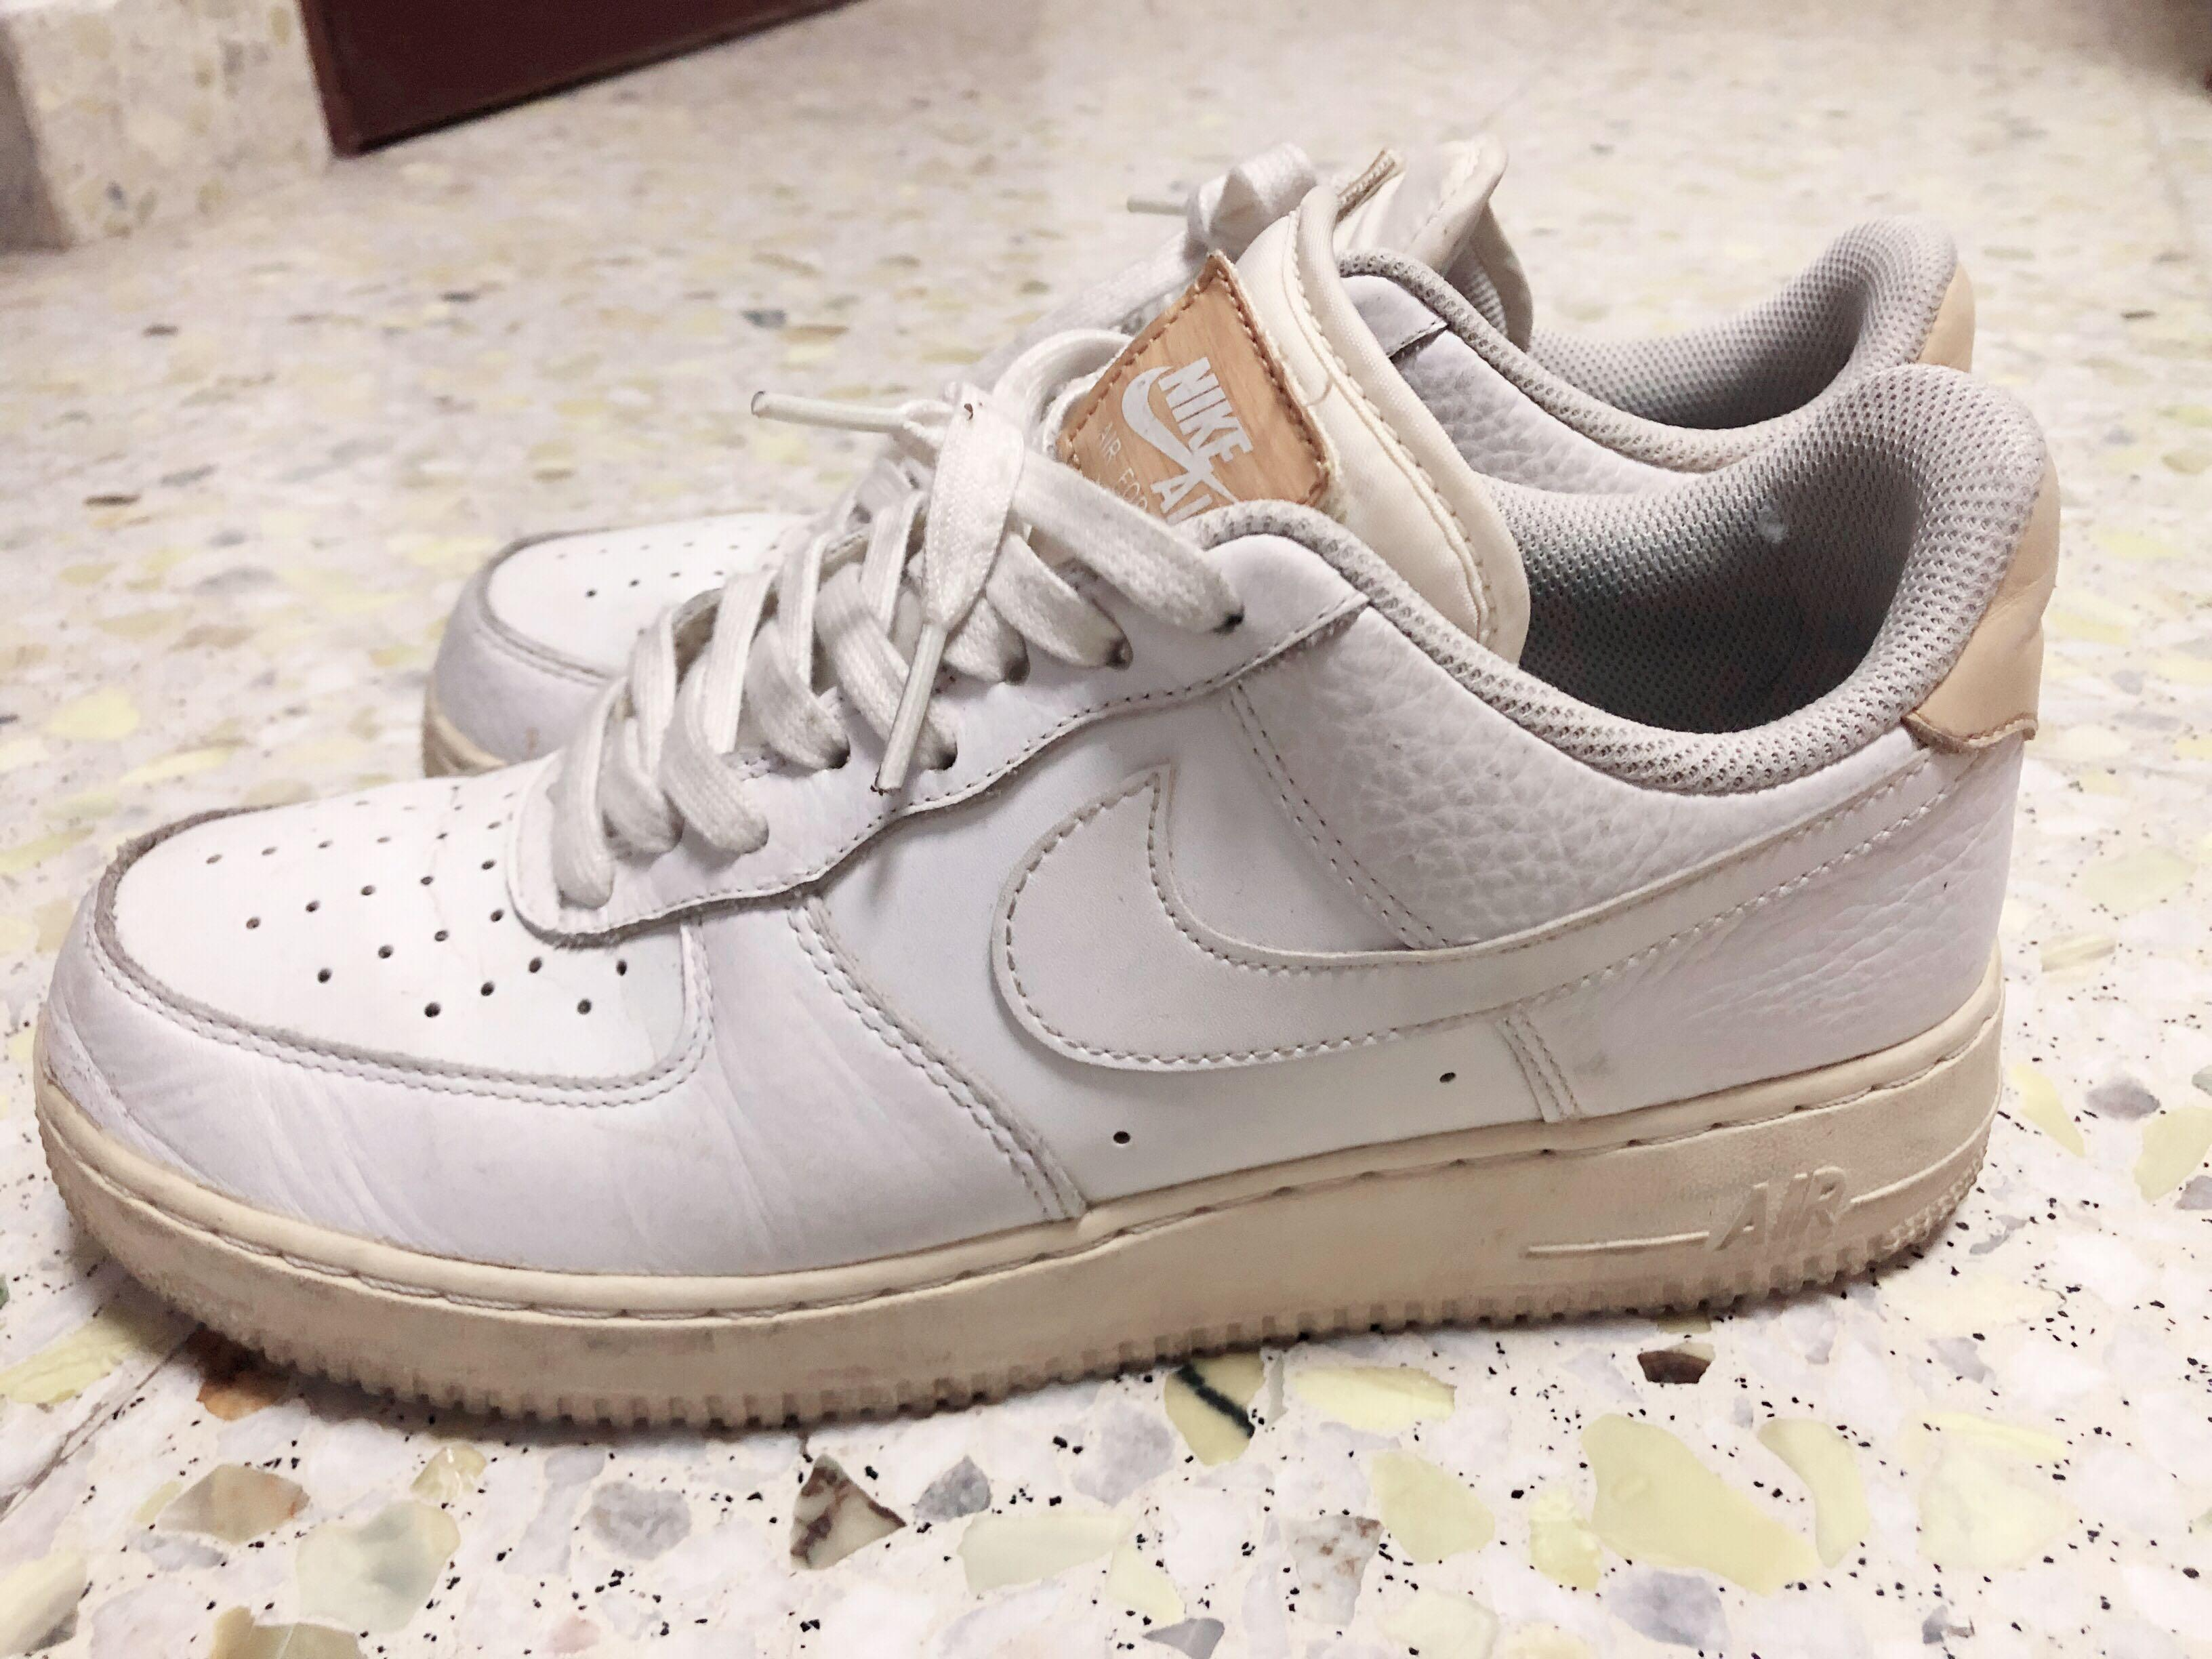 best service 6e70e 4f85b Nike Airforce 1 + Adidas StanSmith, Men's Fashion, Footwear ...